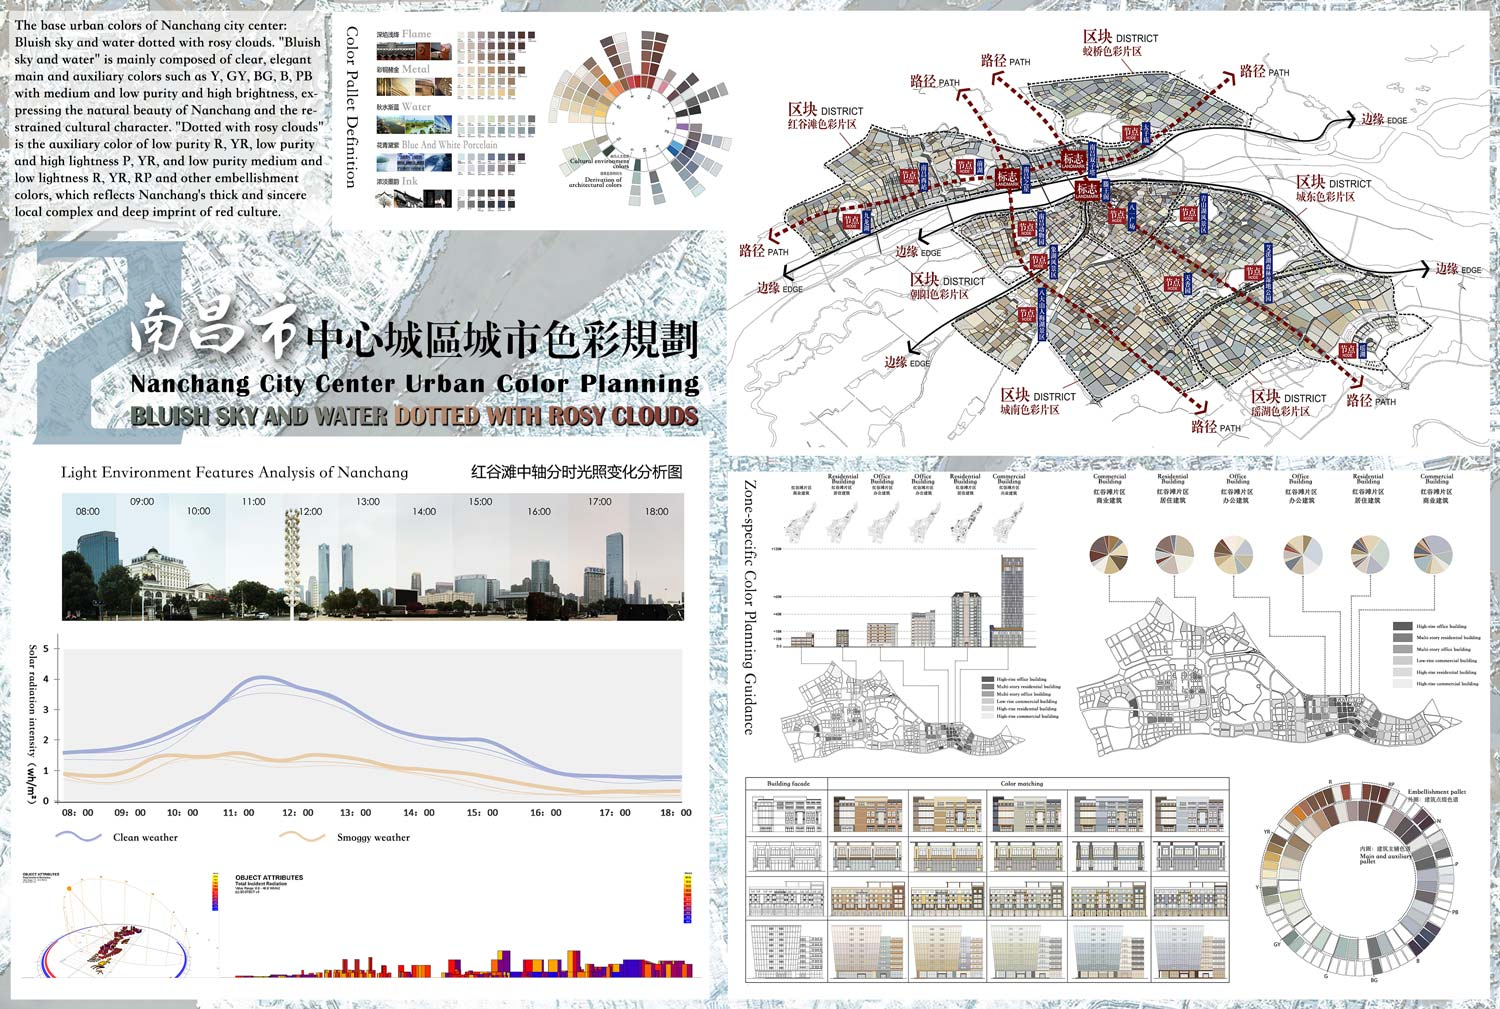 Investigation and analysis of urban color environment in Nanchang Guangzhou Hongyu Architectural Design Co., Ltd. & College of Architect and Urban Planning, Guangzhou University